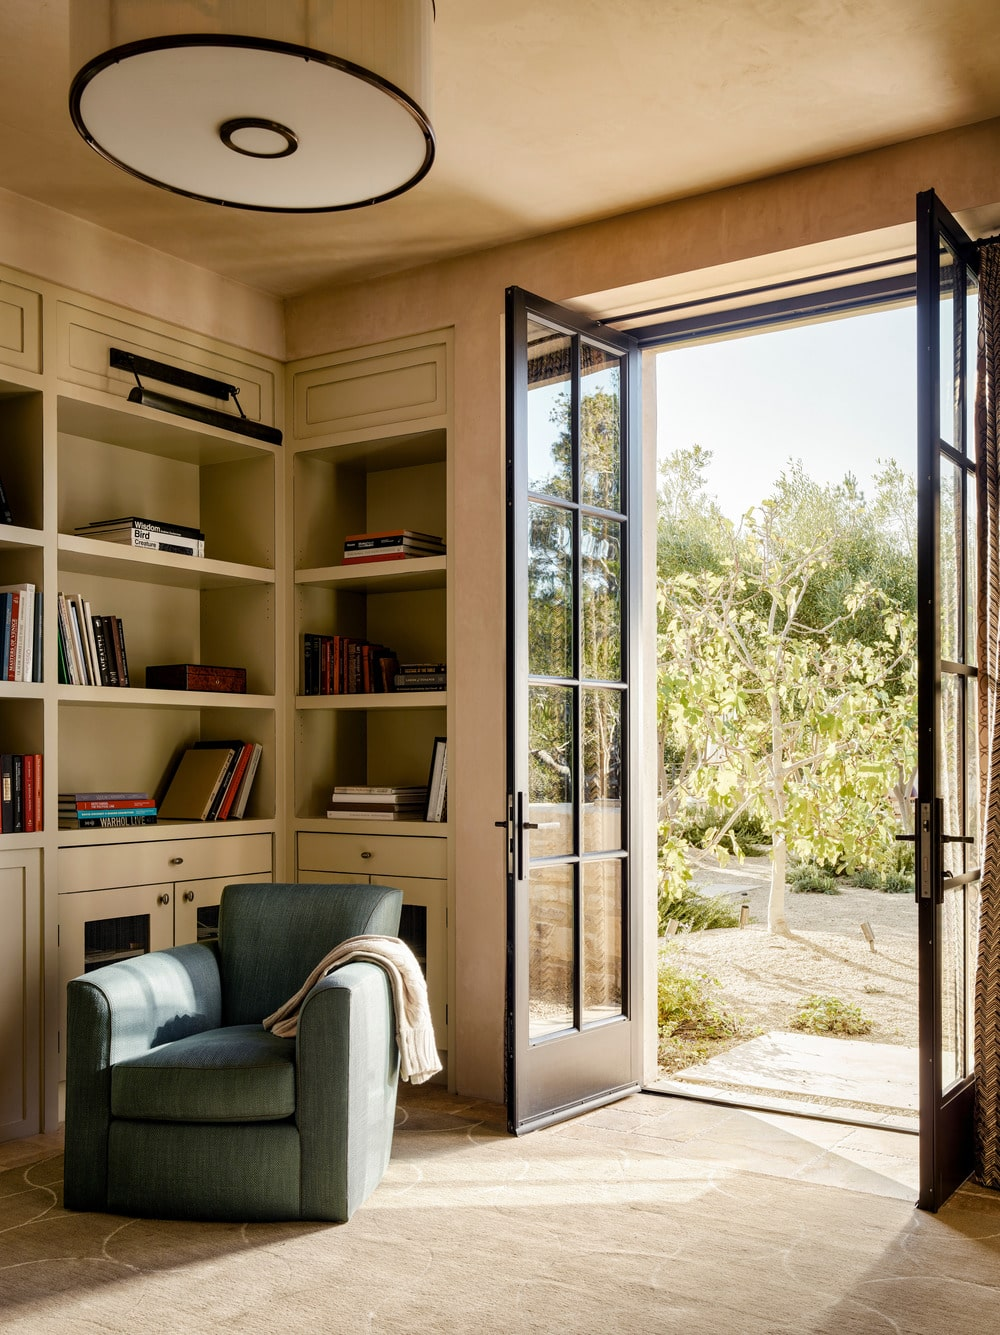 This corner of the lbrary has a dark gray armchair that stands out against the light wooden bookshelves of the wall. This stands on the side of the French glass doors that lead to the landscape outside.